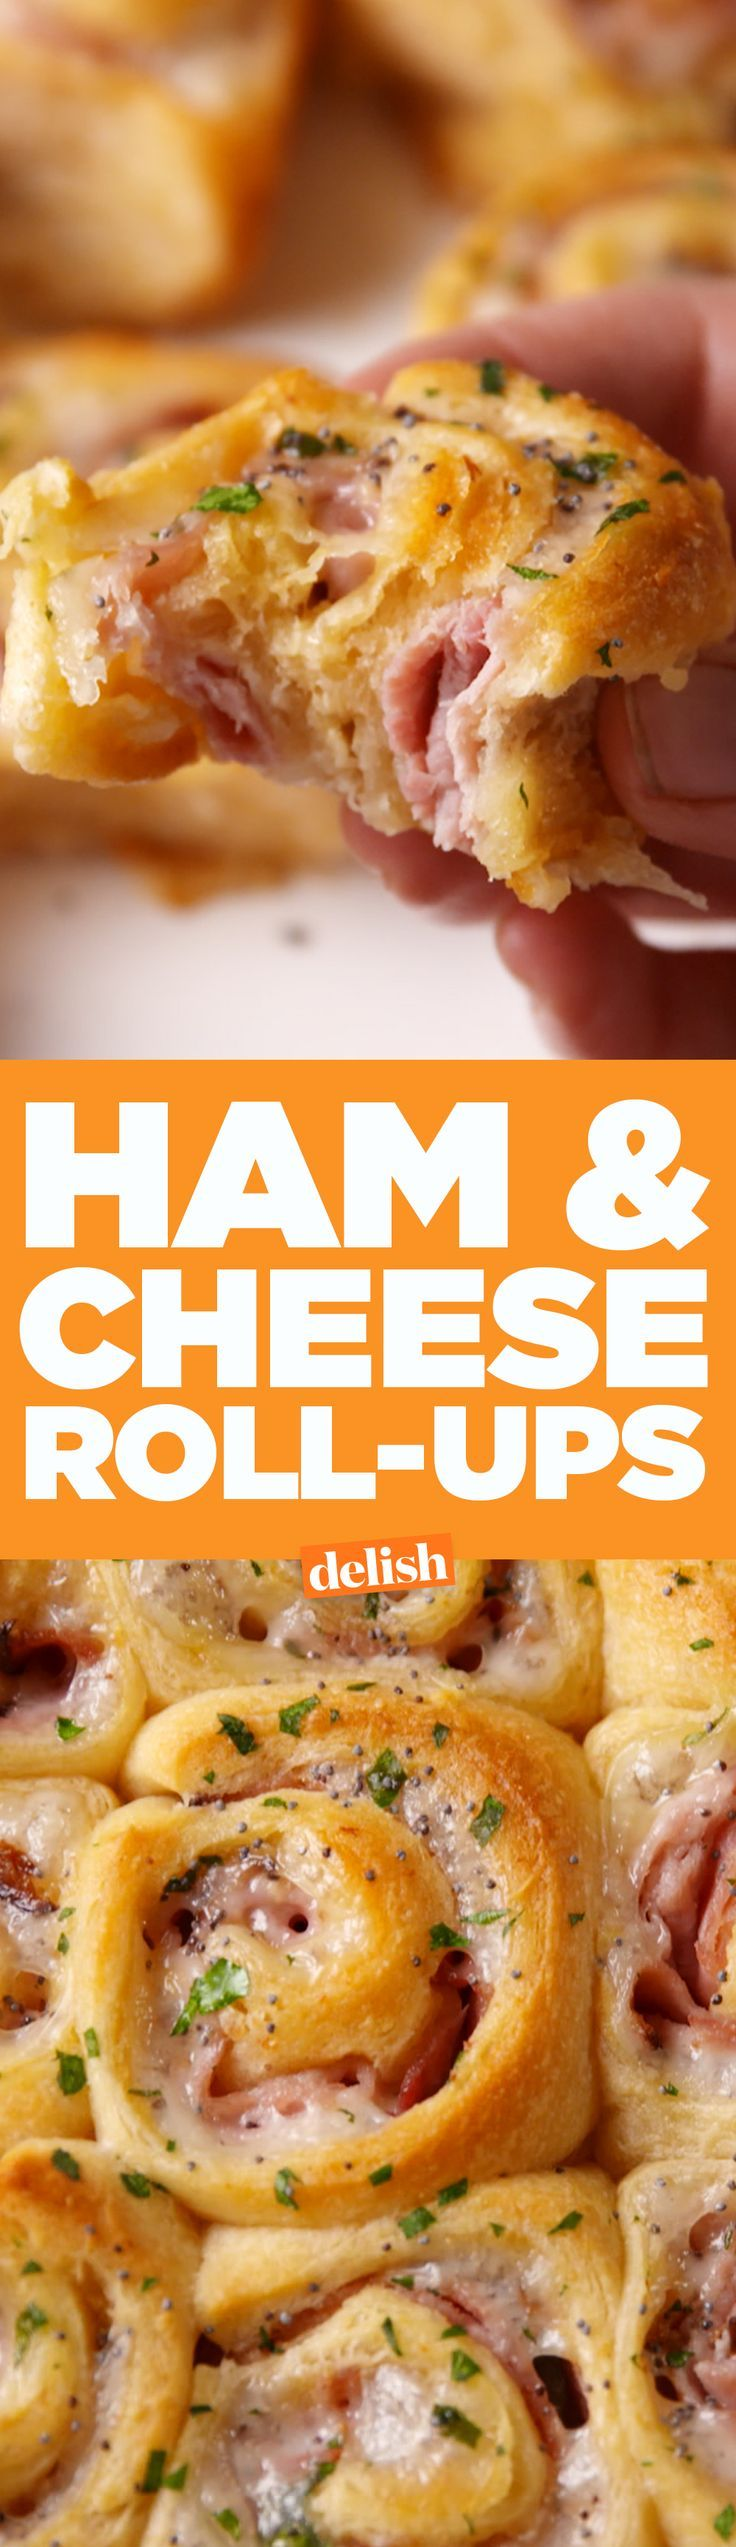 Ham & Cheese Roll-Ups are the most genius way to use Pillsbury crescent rolls. Get the recipe on http://Delish.com.